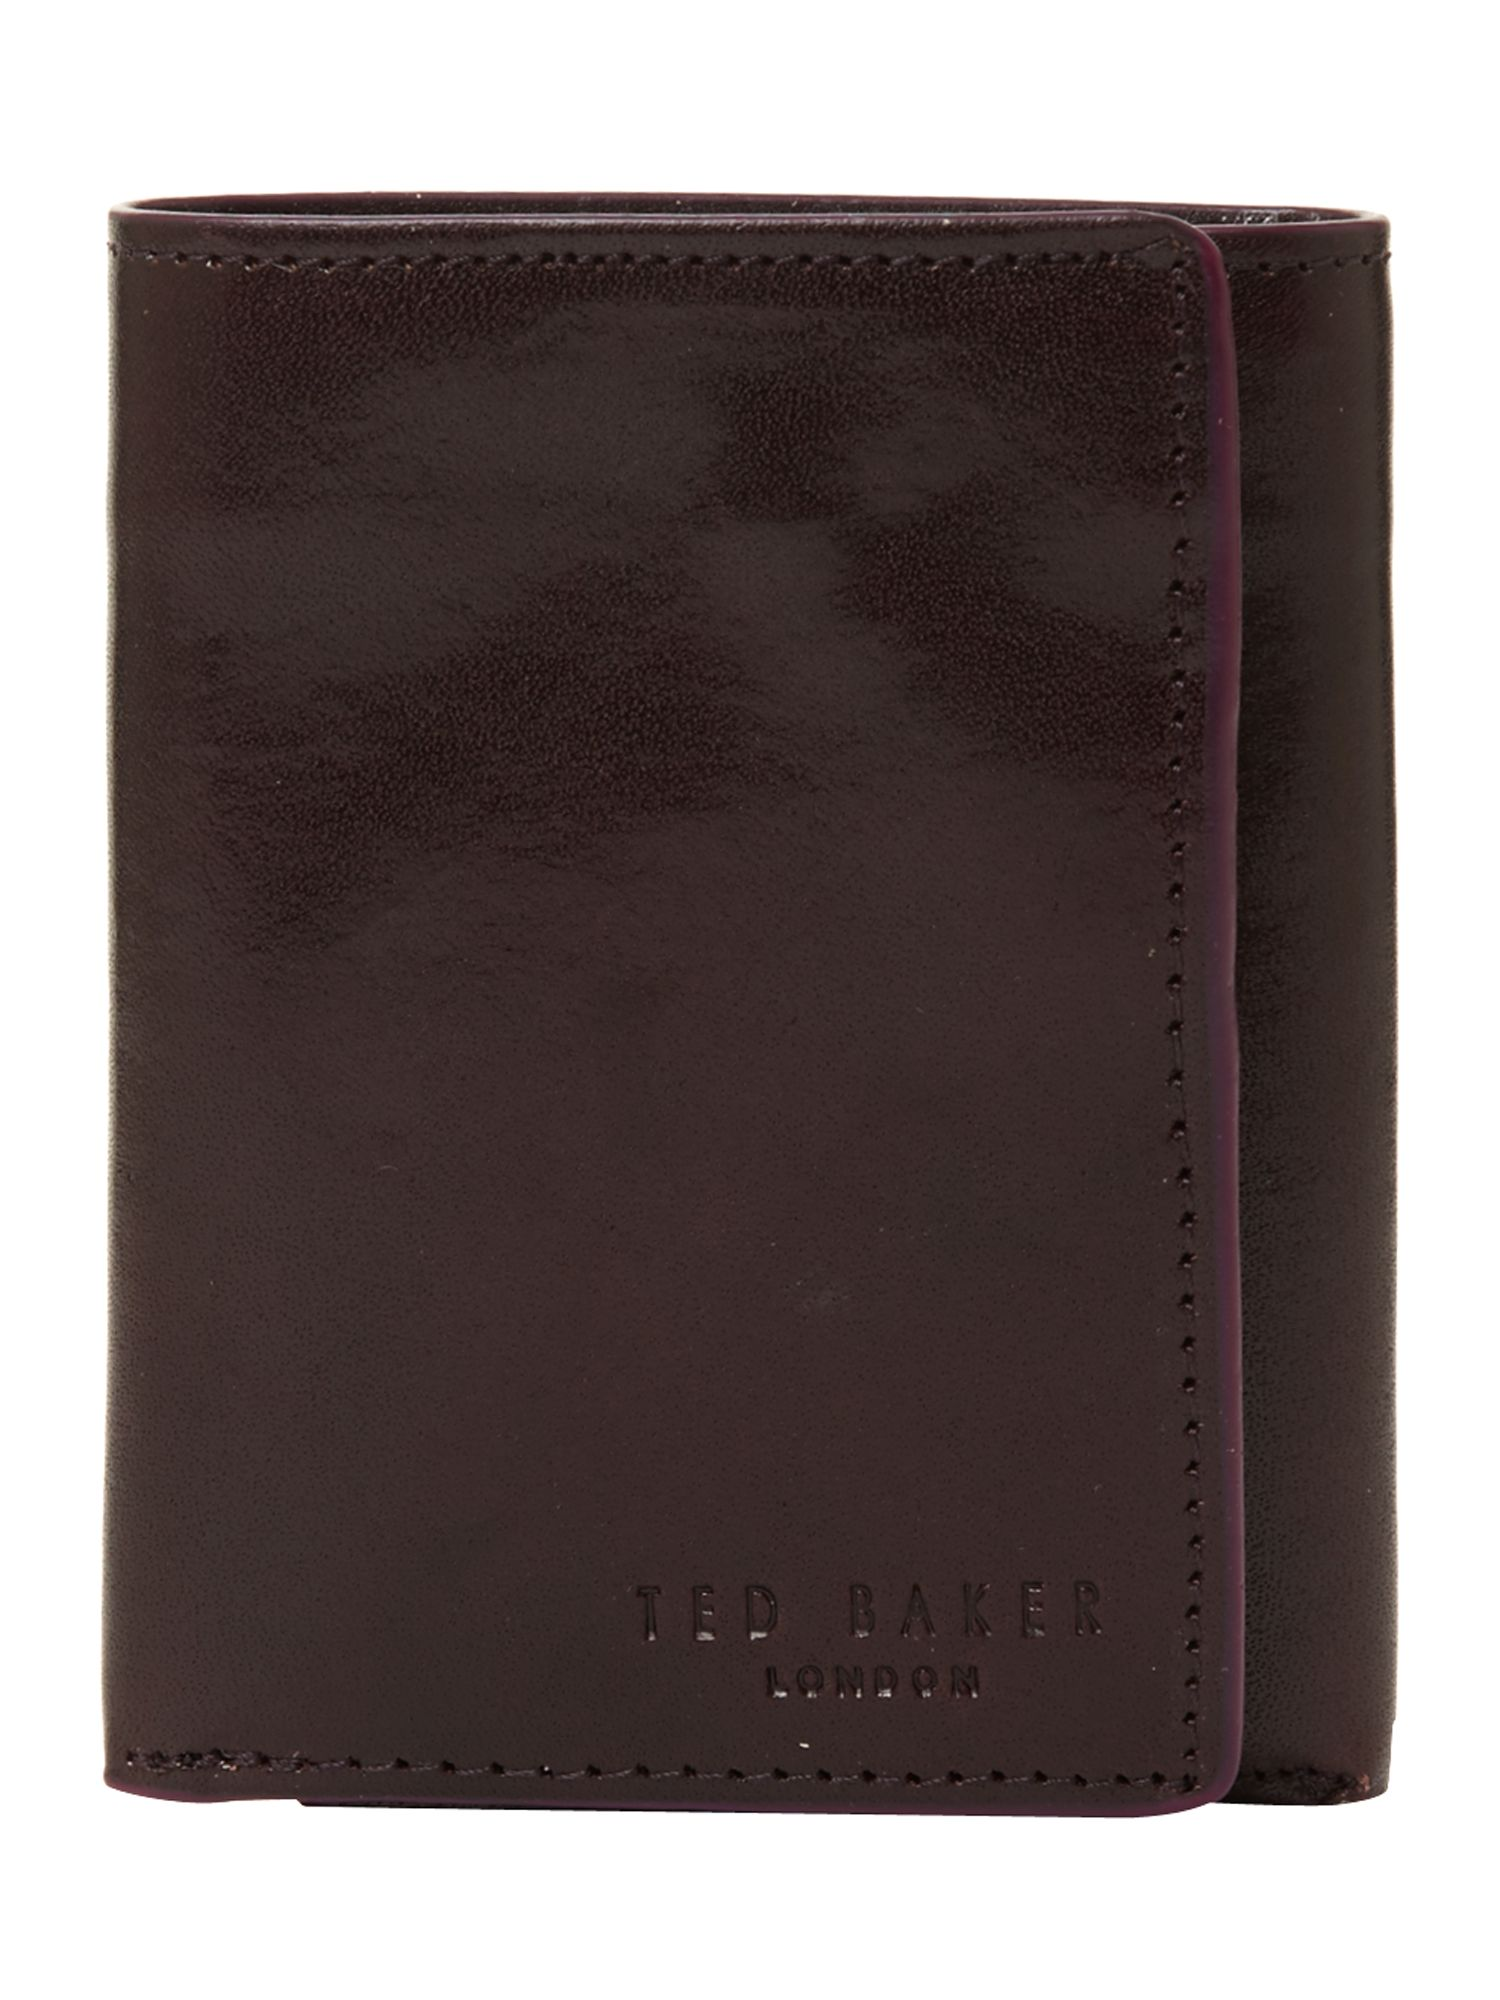 Edge paint trifold wallet